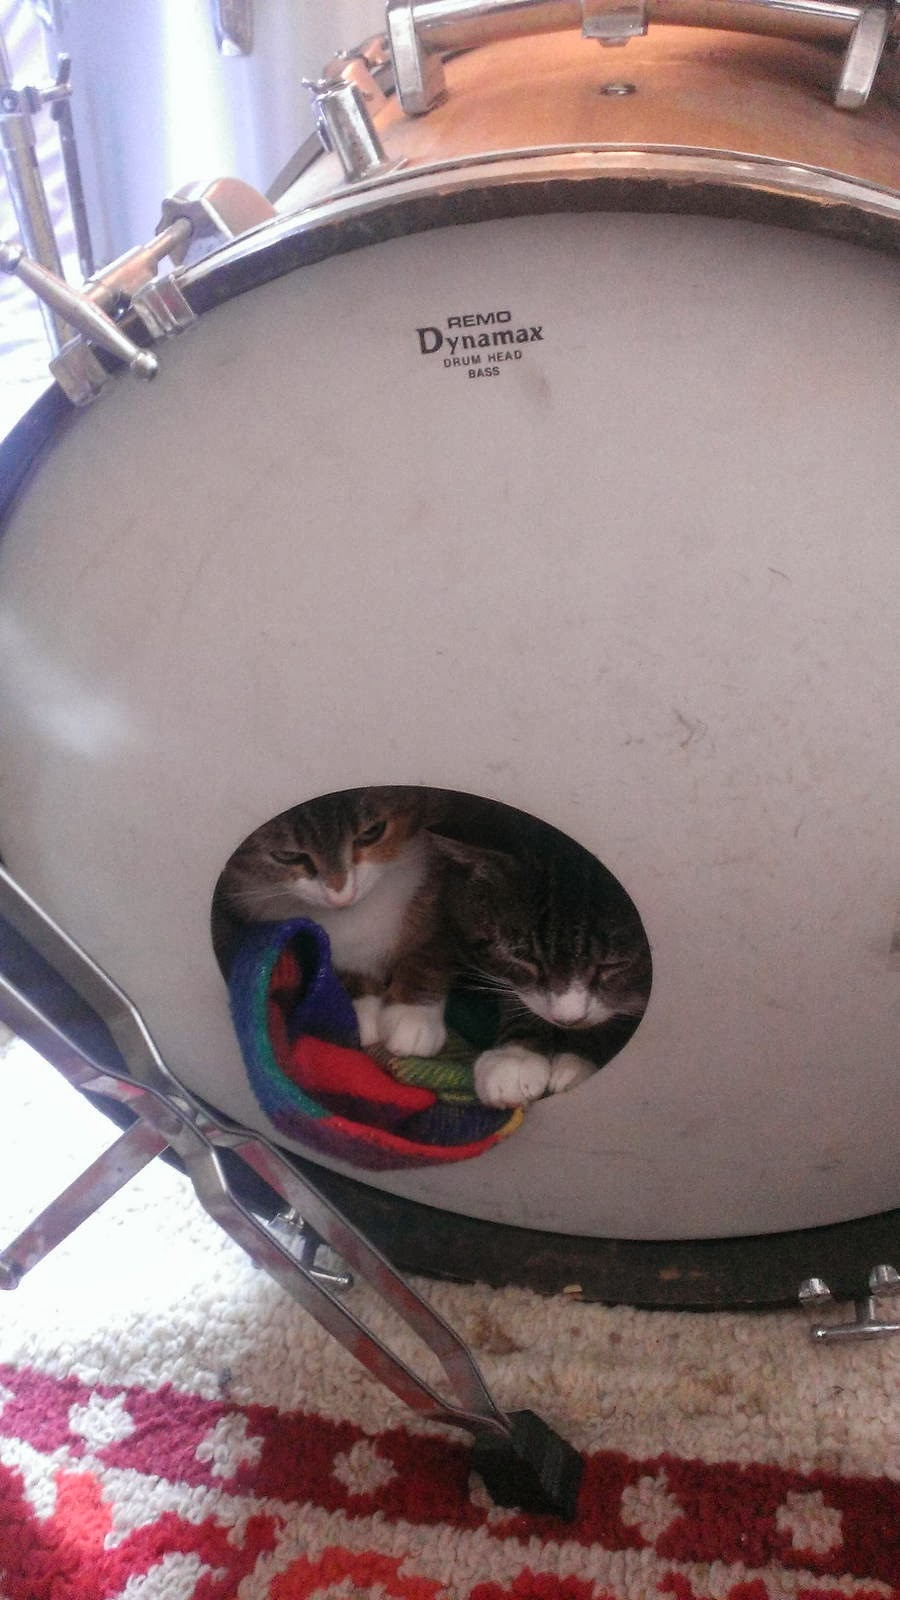 Funny cats - part 91 (40 pics + 10 gifs), two kitten sit inside drum kit